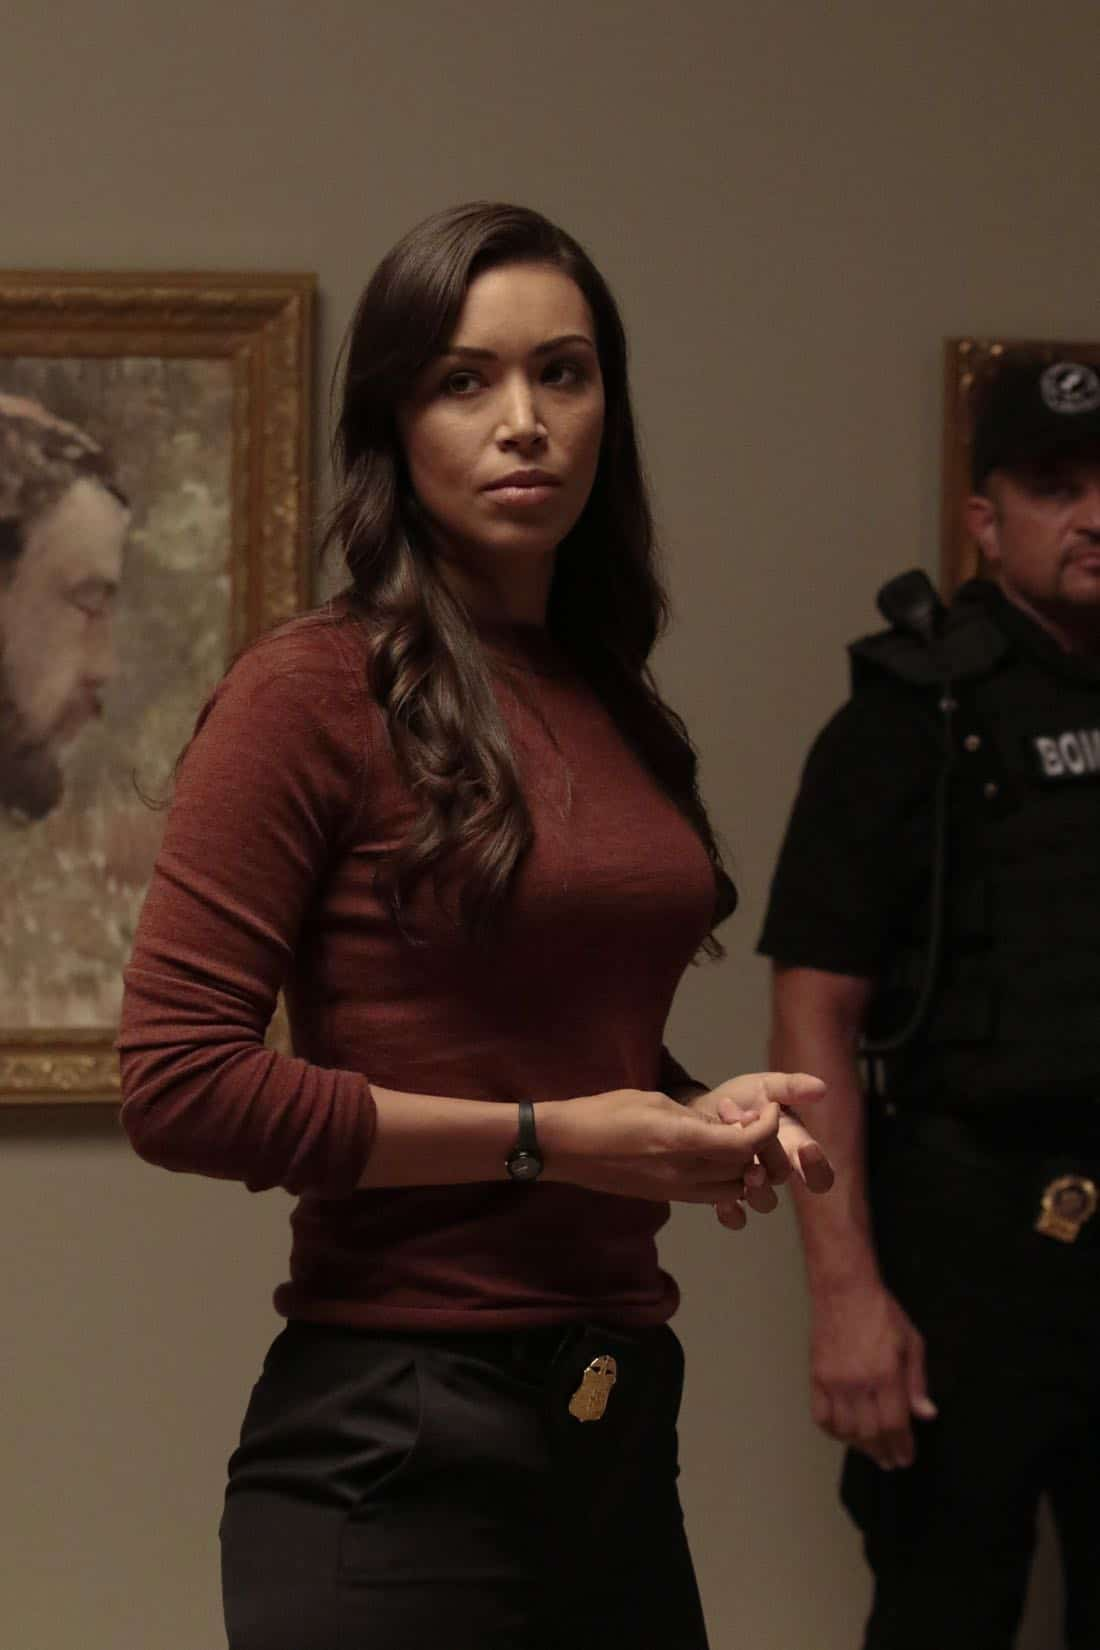 """DECEPTION - """"Escapology"""" - When an art museum docent is held hostage, Kay enlists Cameron and his team to help rescue her using the art of escapology, on """"Deception,"""" airing SUNDAY, MARCH 25 (10:01-11:00 p.m. EDT), on The ABC Television Network. (ABC/Giovanni Rufino) ILFENESH HADERA"""